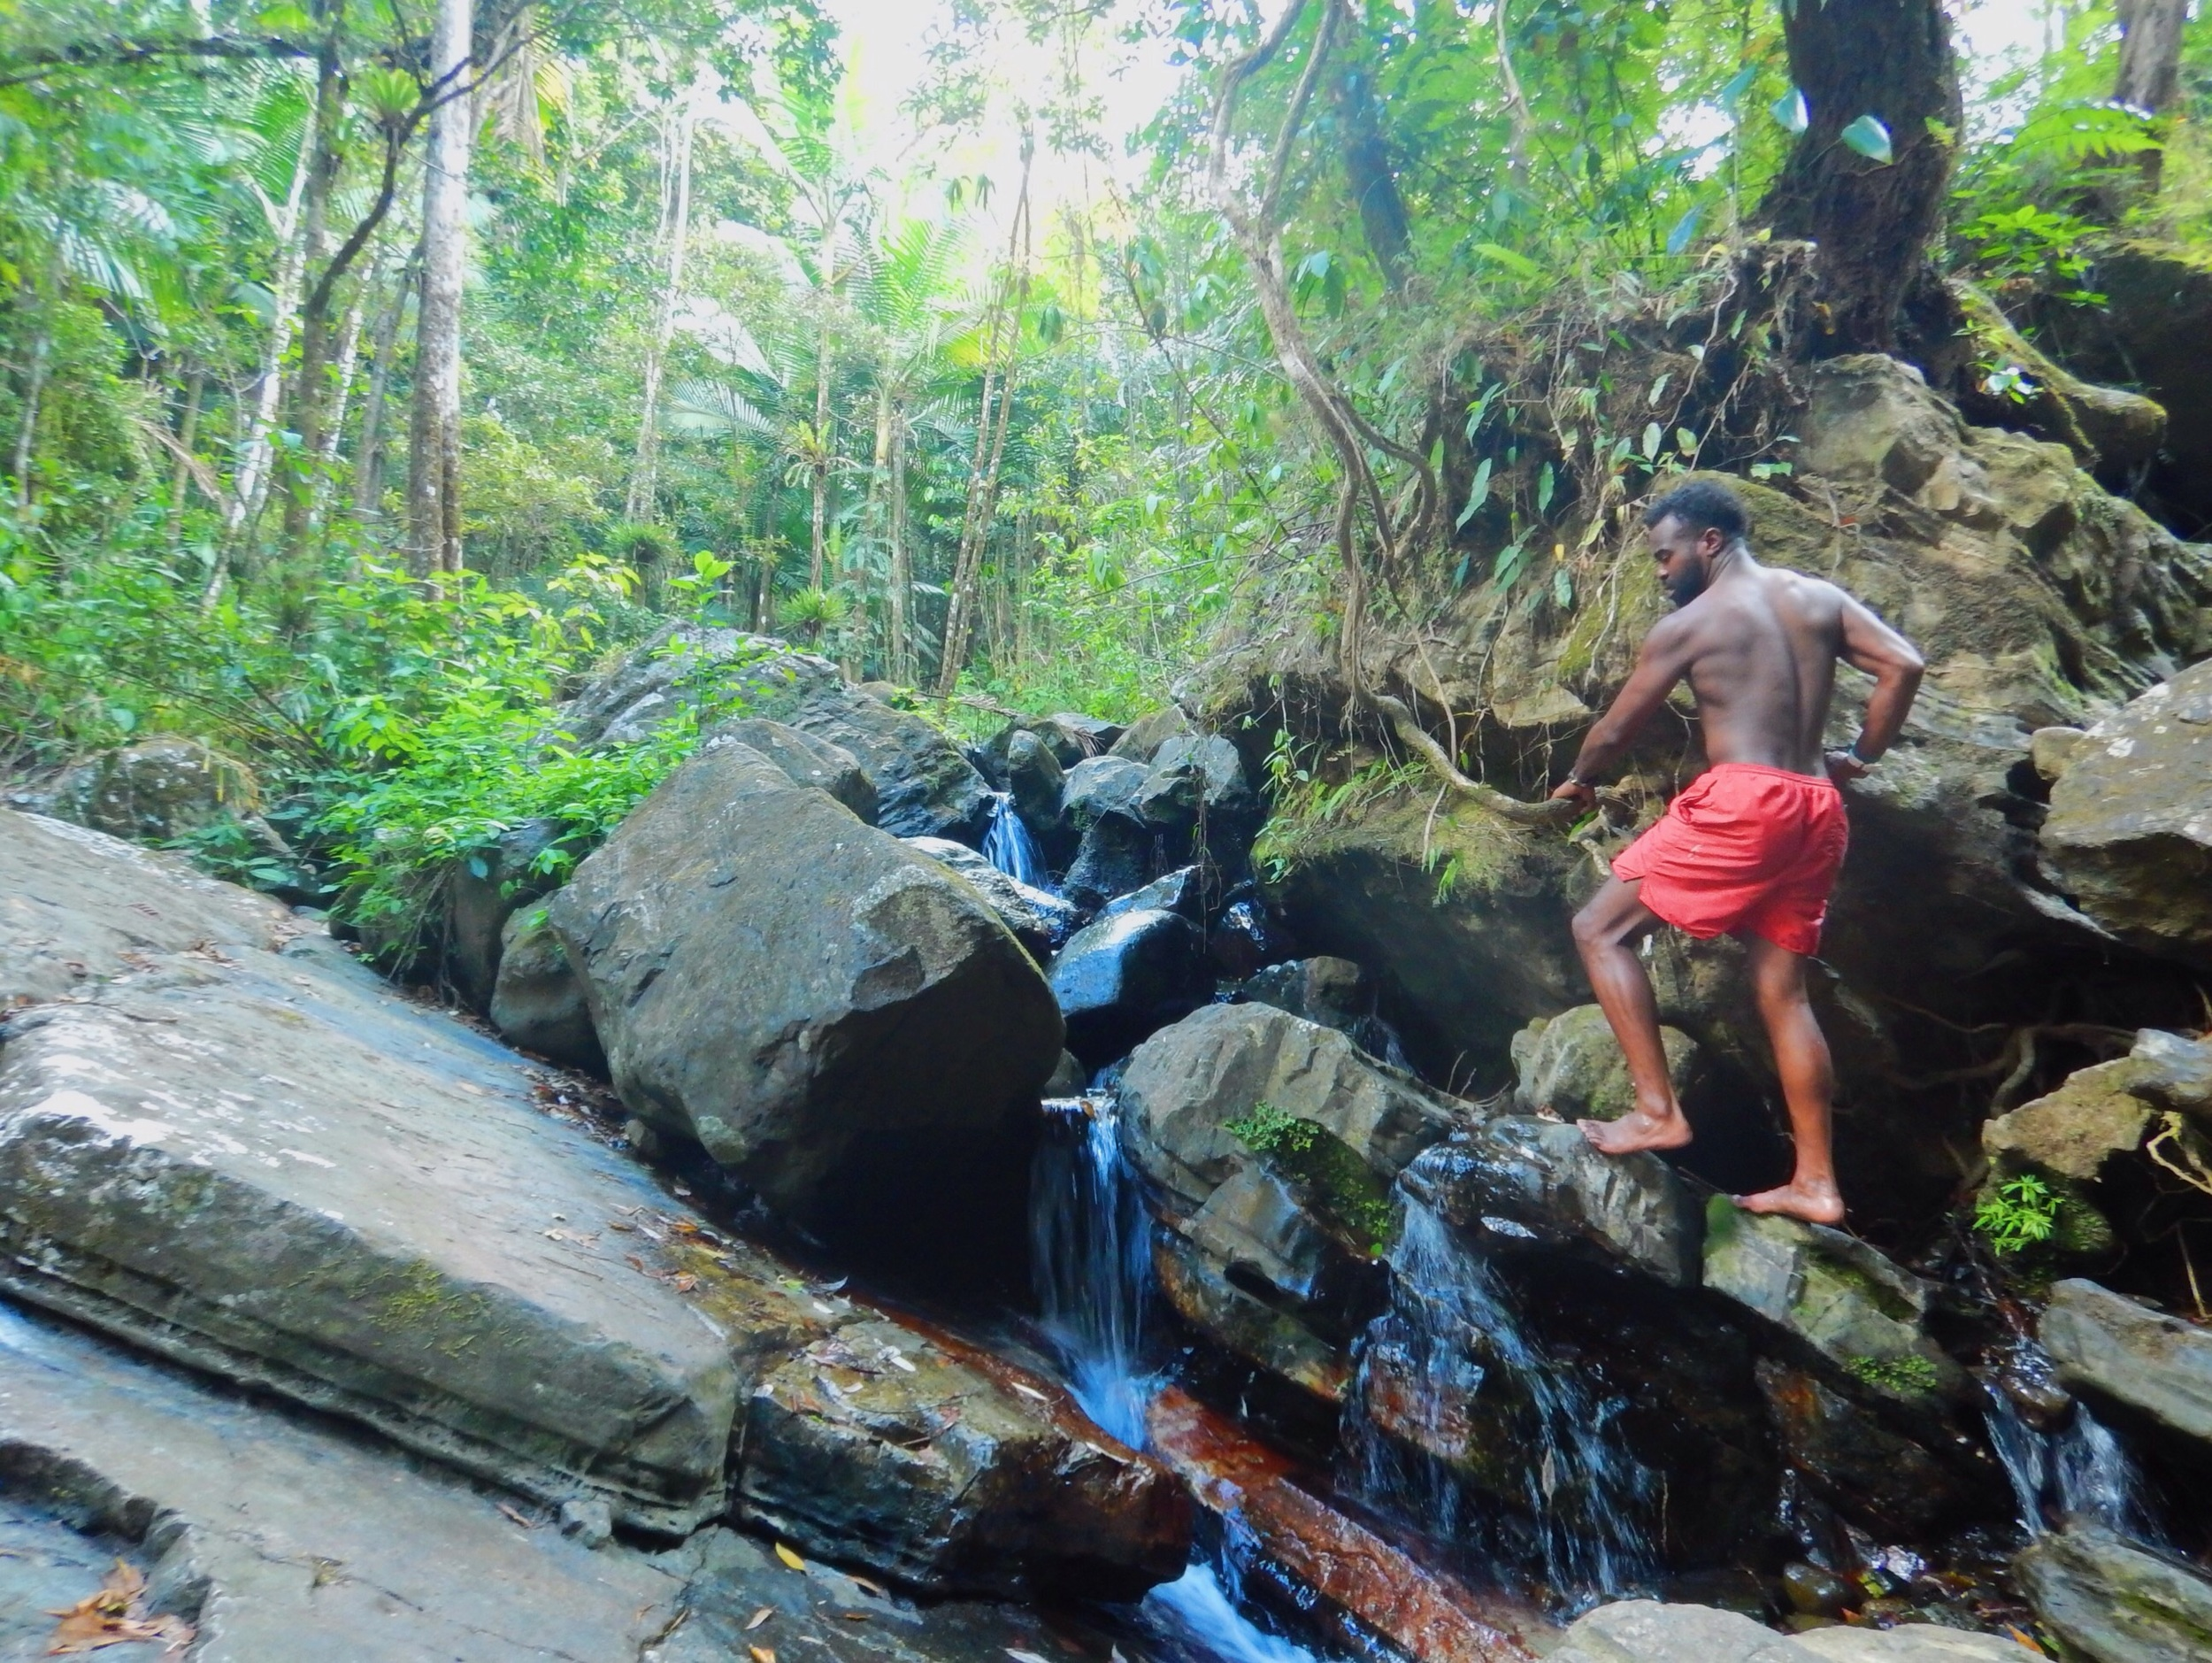 Climbing beautiful rocks in the El Yunque rainforest as the fresh water rushes over my feet.